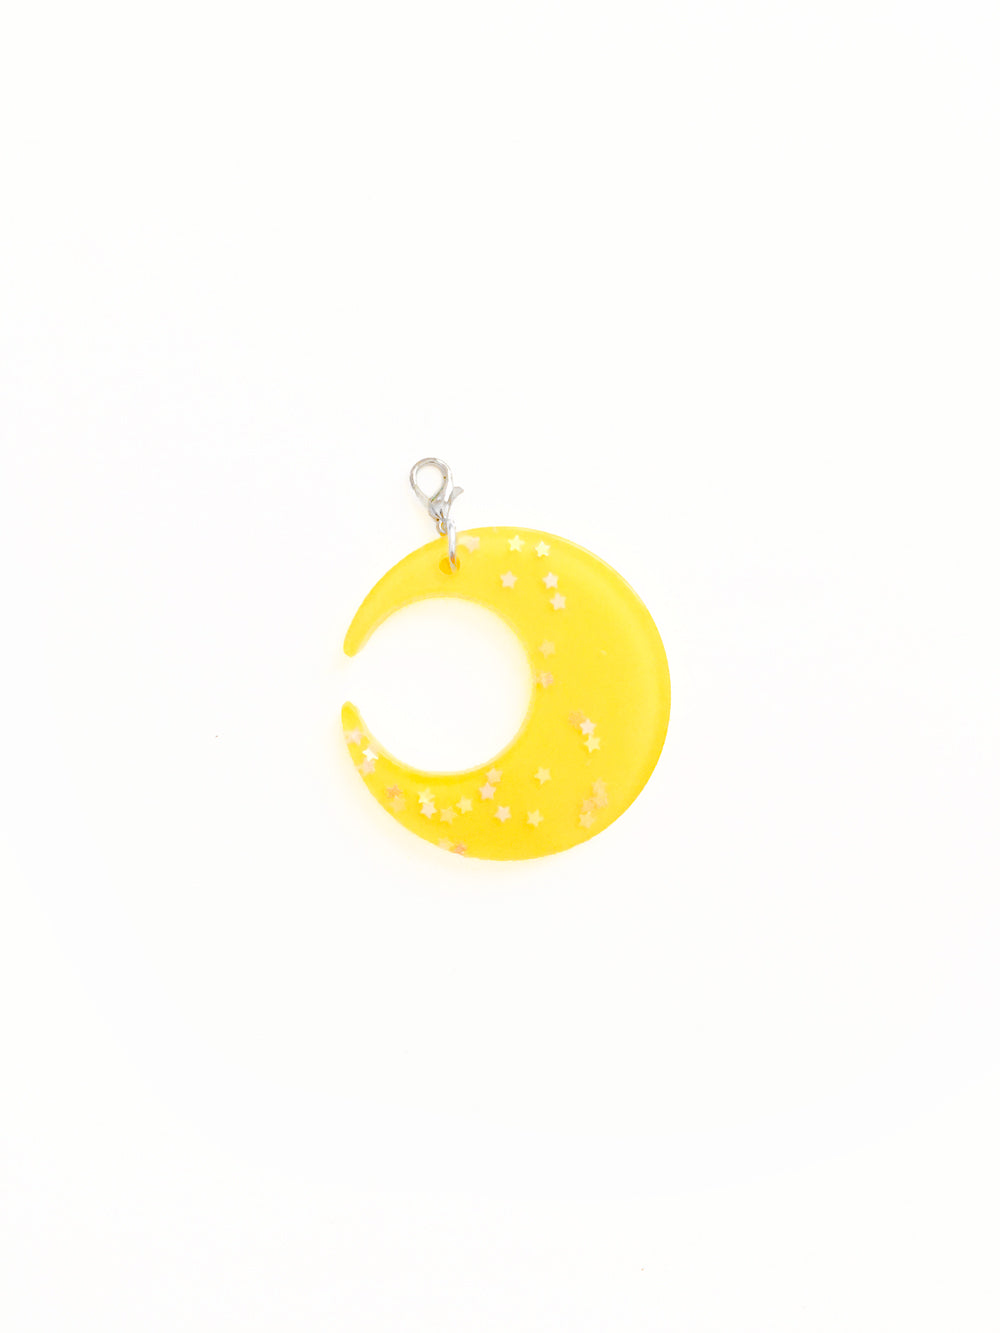 Yellow Moon Zipper Pull Charm